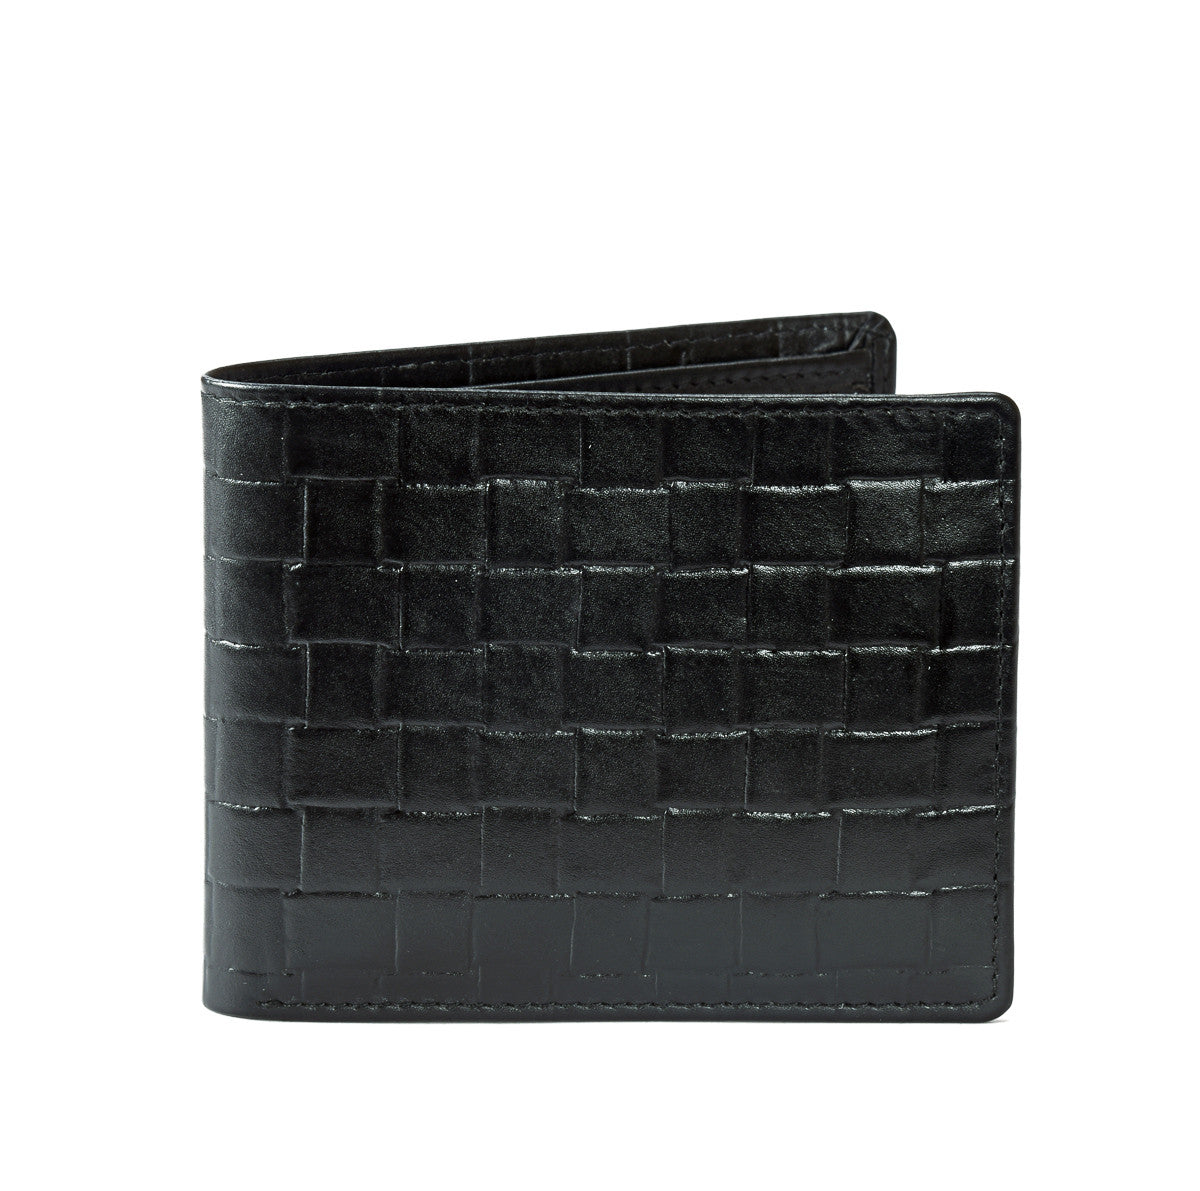 Secure RFID leather wallet for men - closed